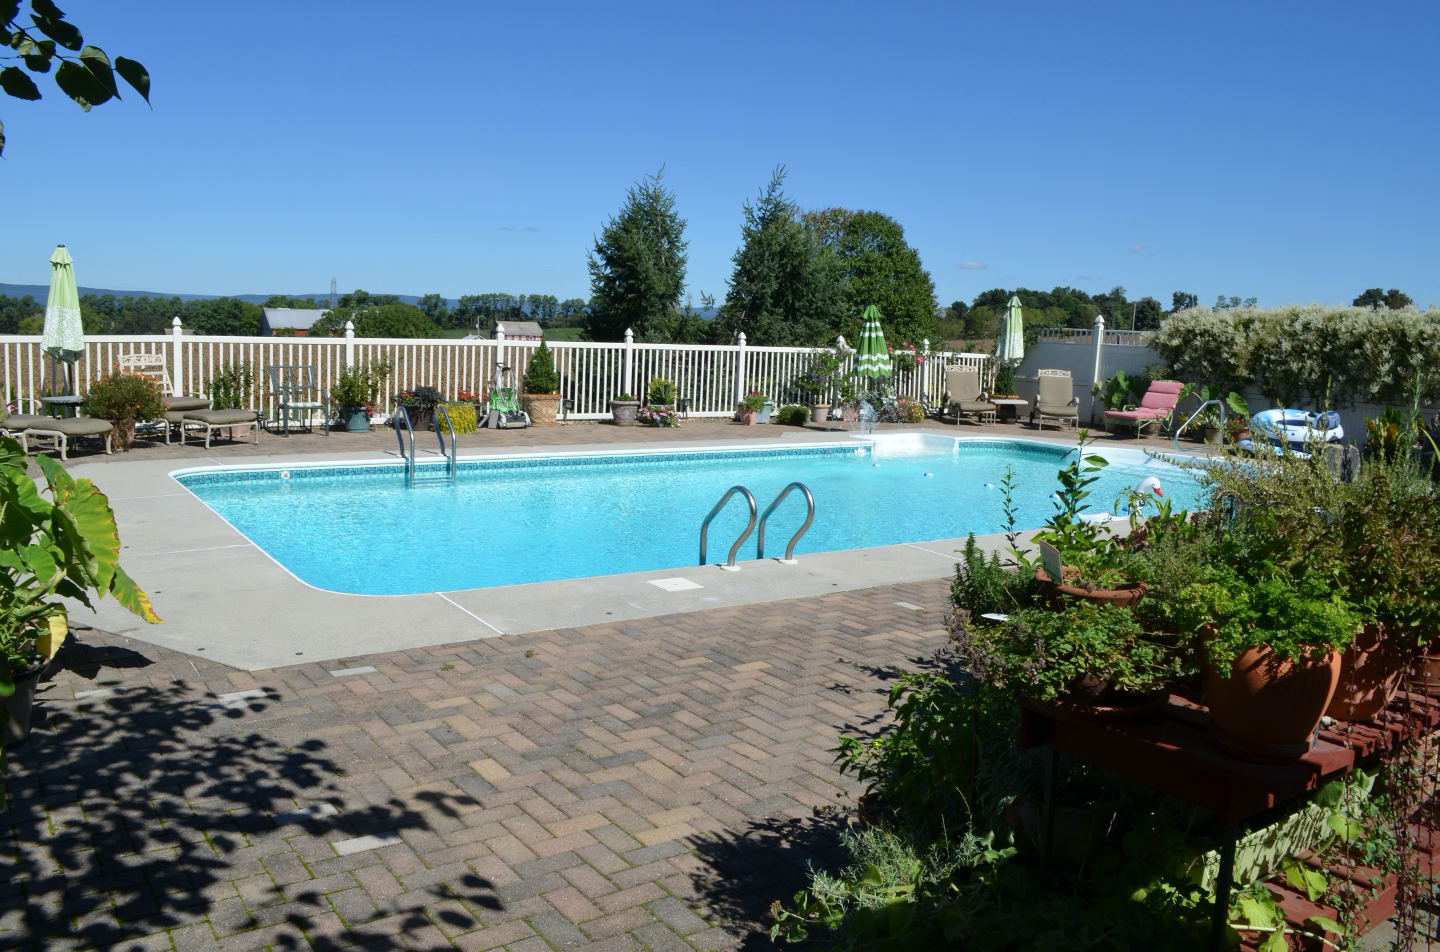 Large swimming pool with big brick deck and surrounded by gardens of potted plants.